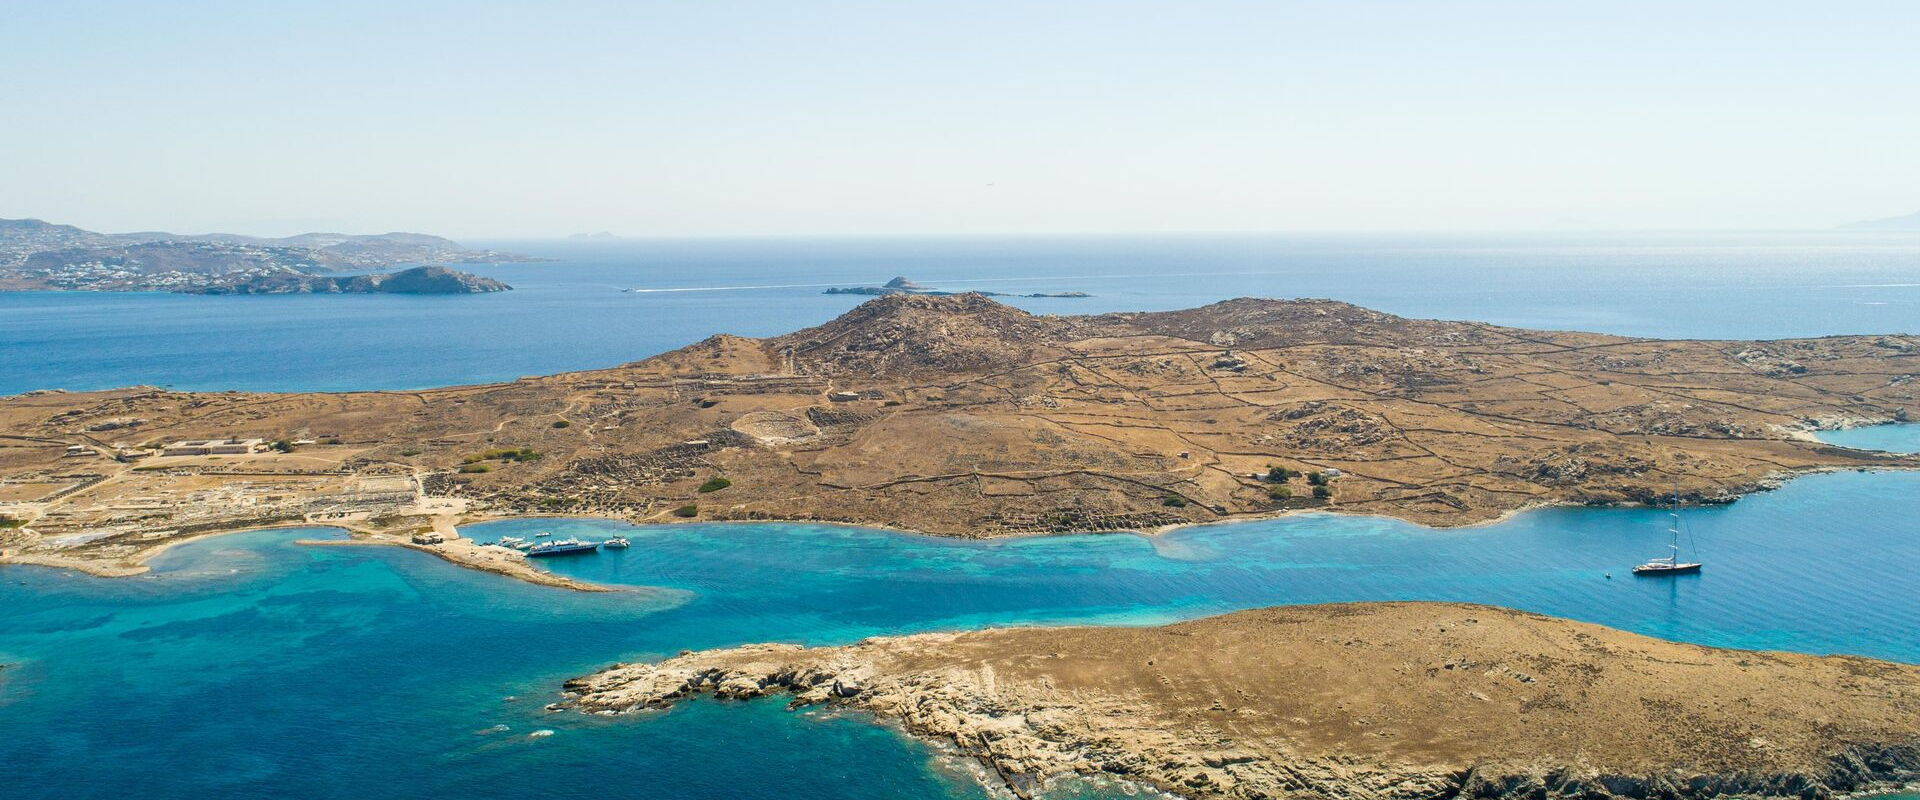 The most unexpected excursion you'll make when visiting Mykonos, Delos island